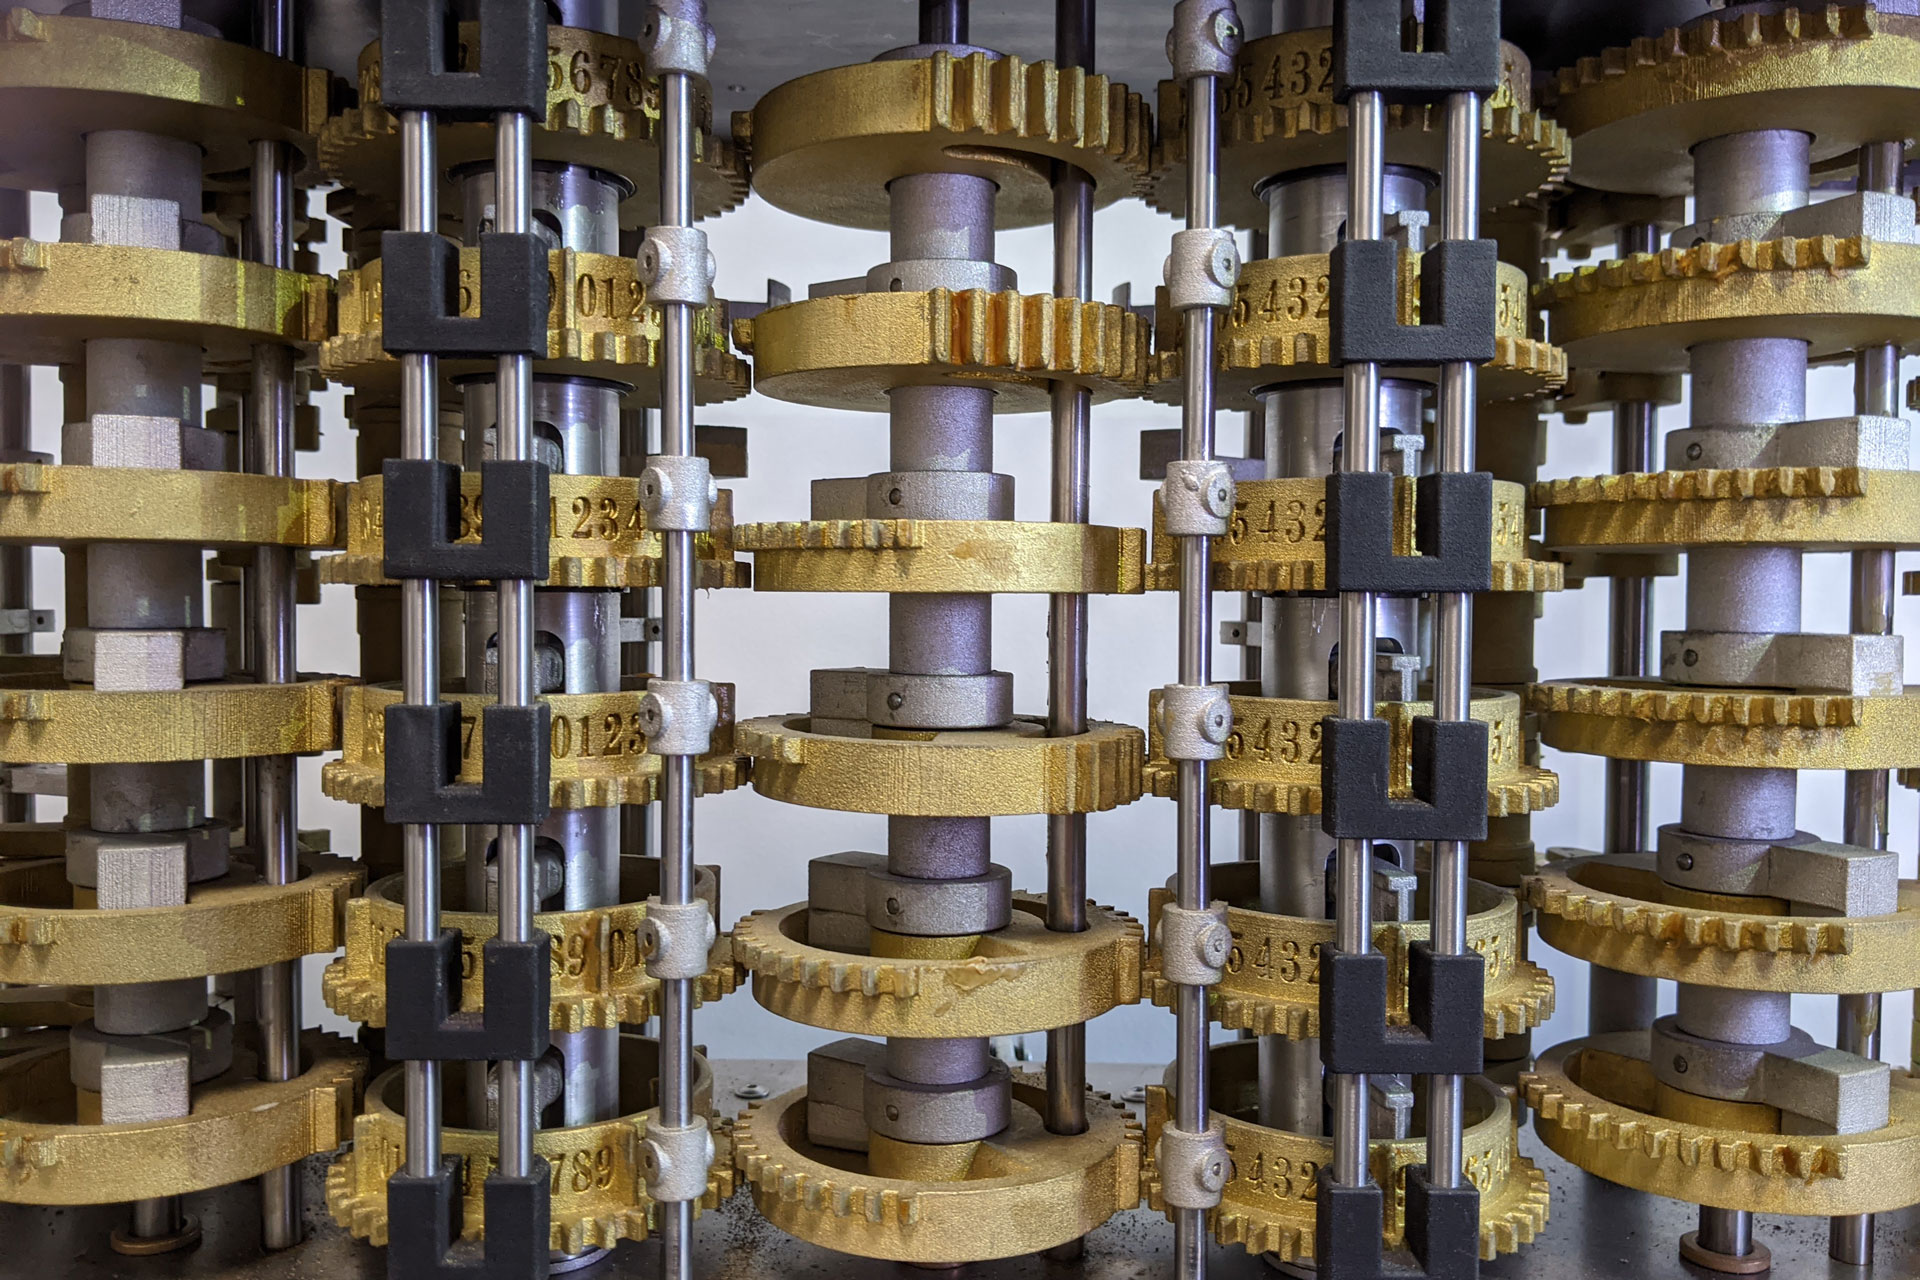 Plummer's Difference Engine Number 3 (detail) - photo credit: Adrian Johnstone